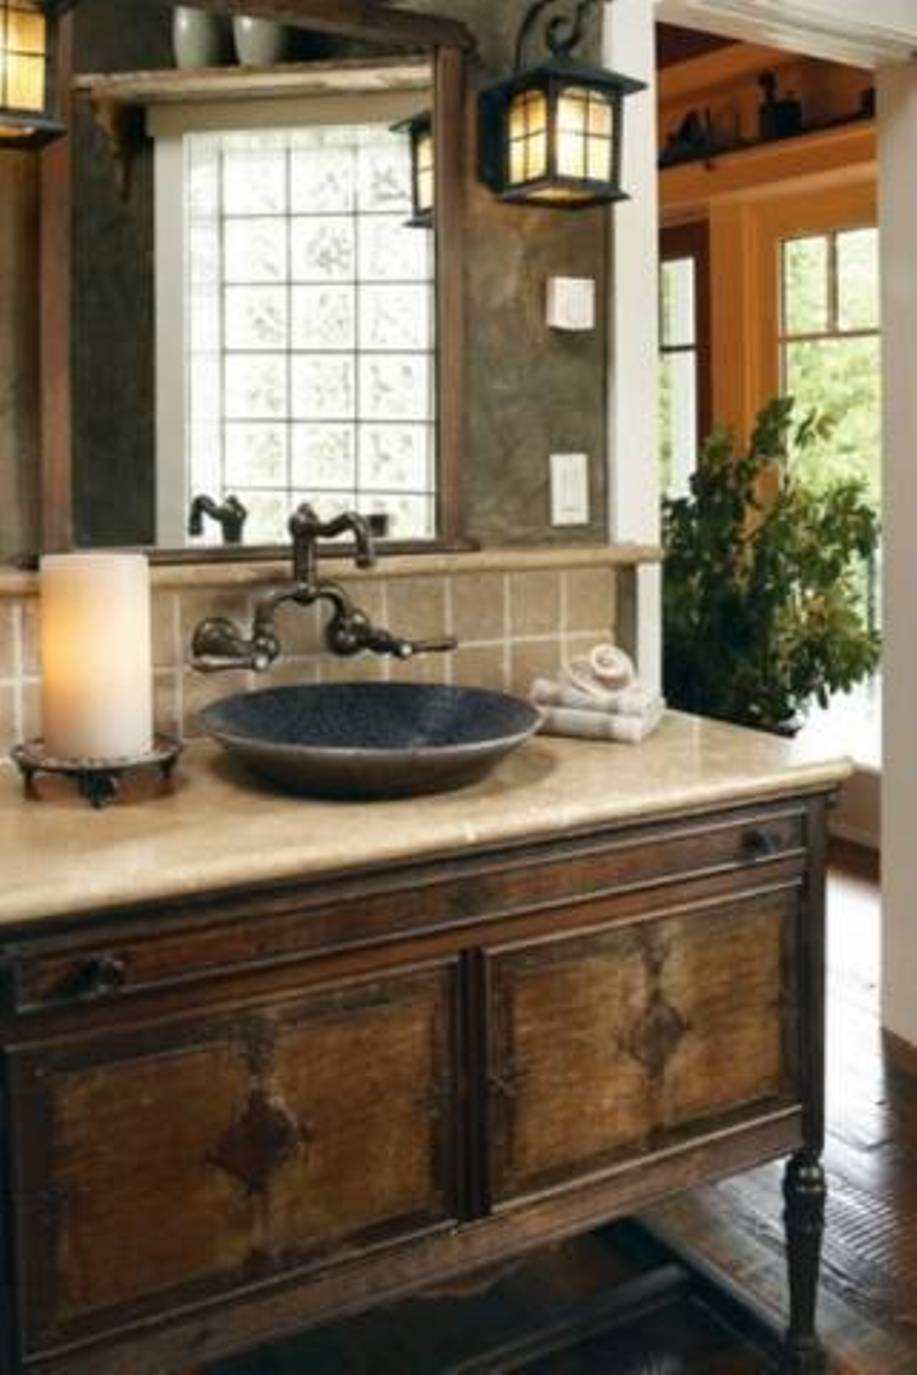 Modern Happy Antique Bathroom Sinks Montage Style Vanity Single Sink 60 for Luxury Antique Bathroom Sinks